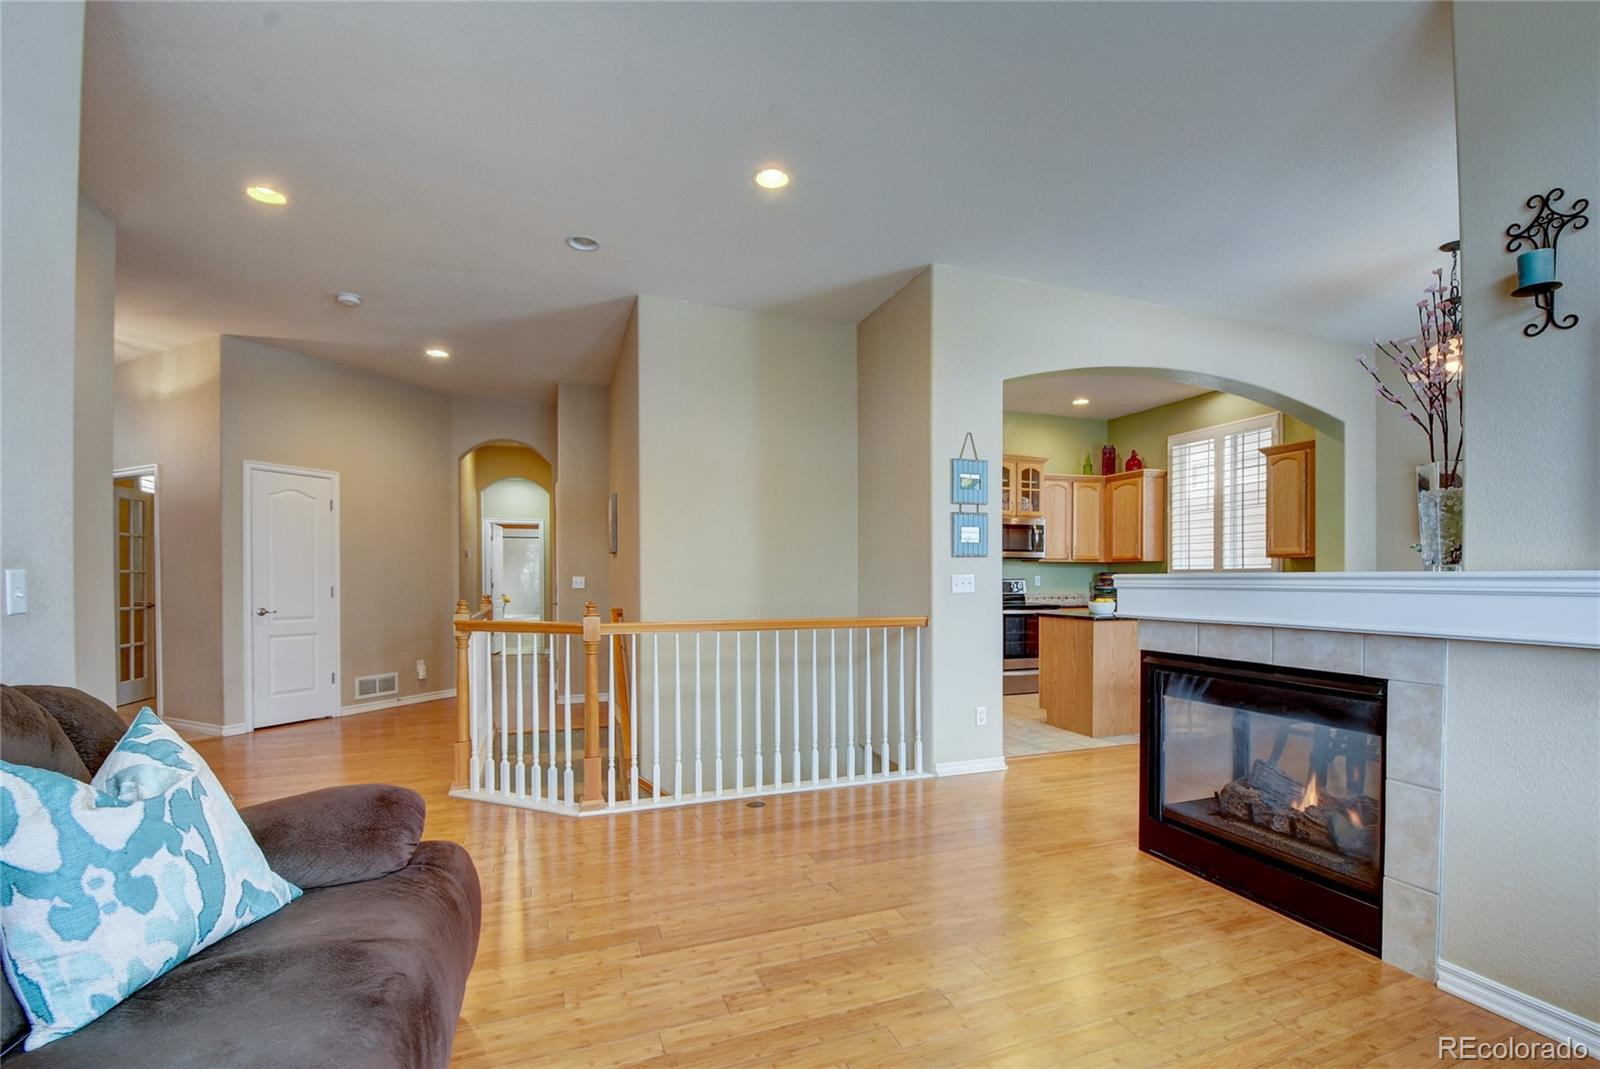 MLS# 6360939 - 11 - 10581 Pearlwood Circle, Highlands Ranch, CO 80126